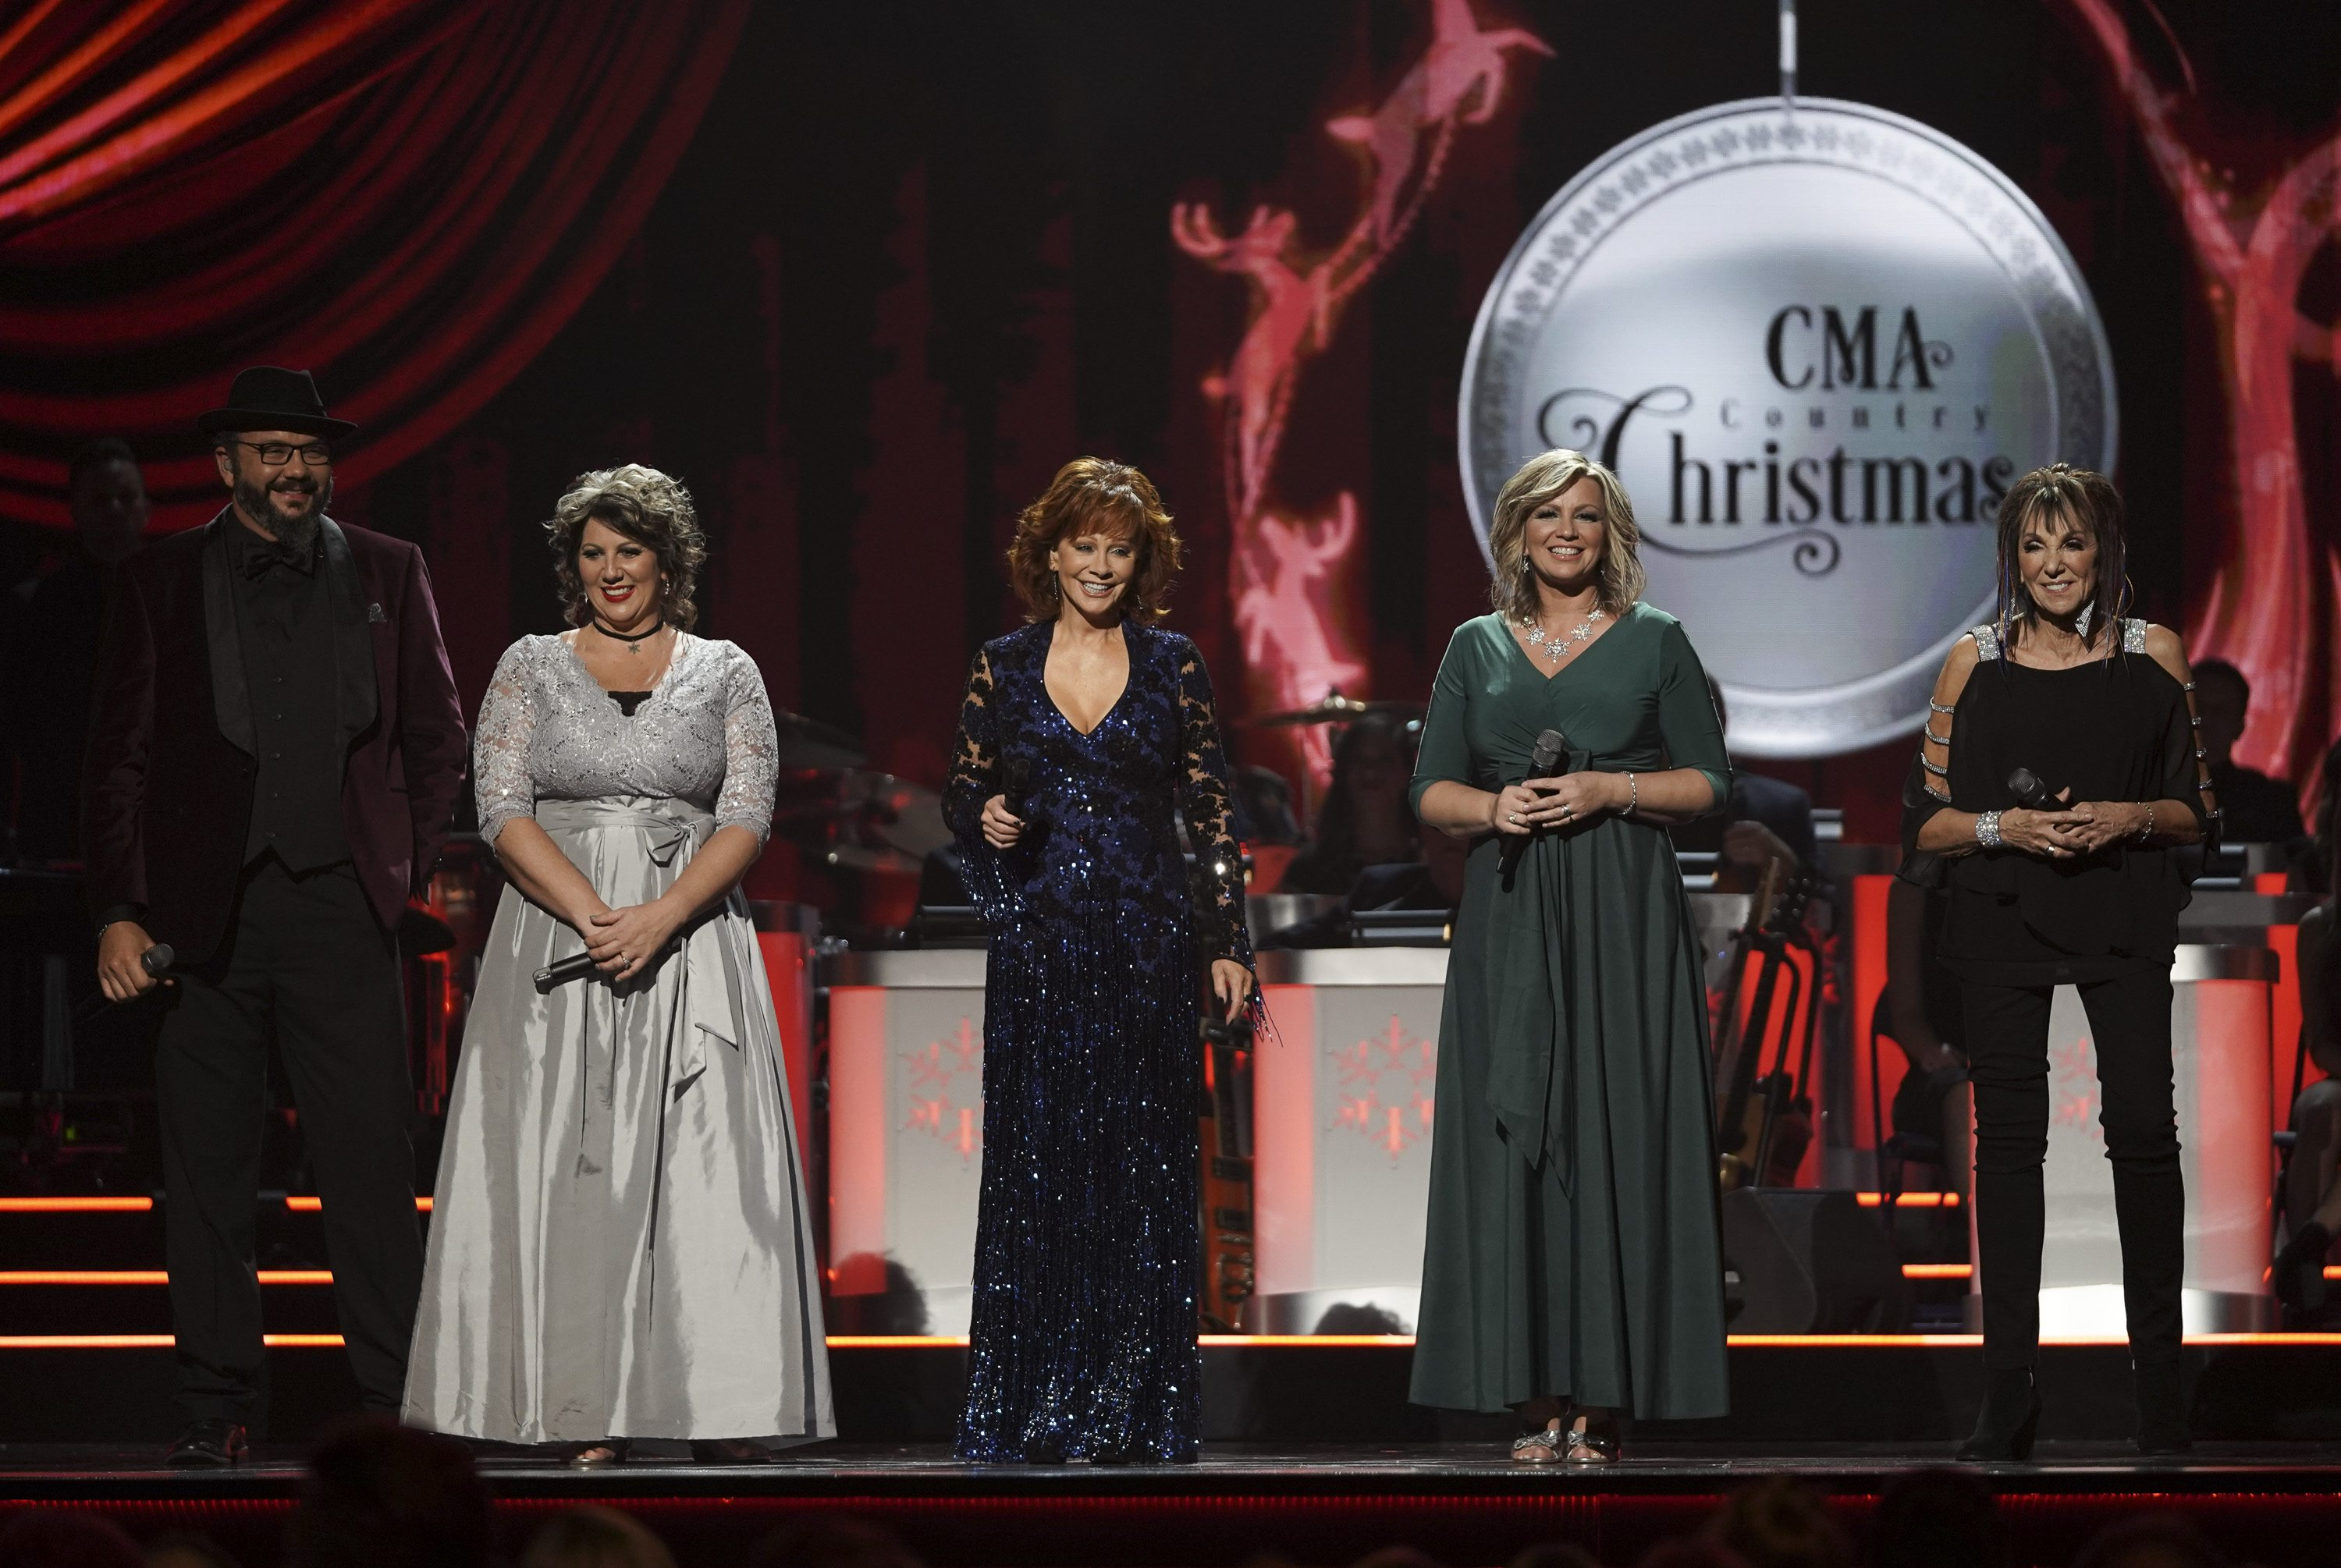 Cma Country Christmas.Who Is Performing At Cma Country Christmas 2018